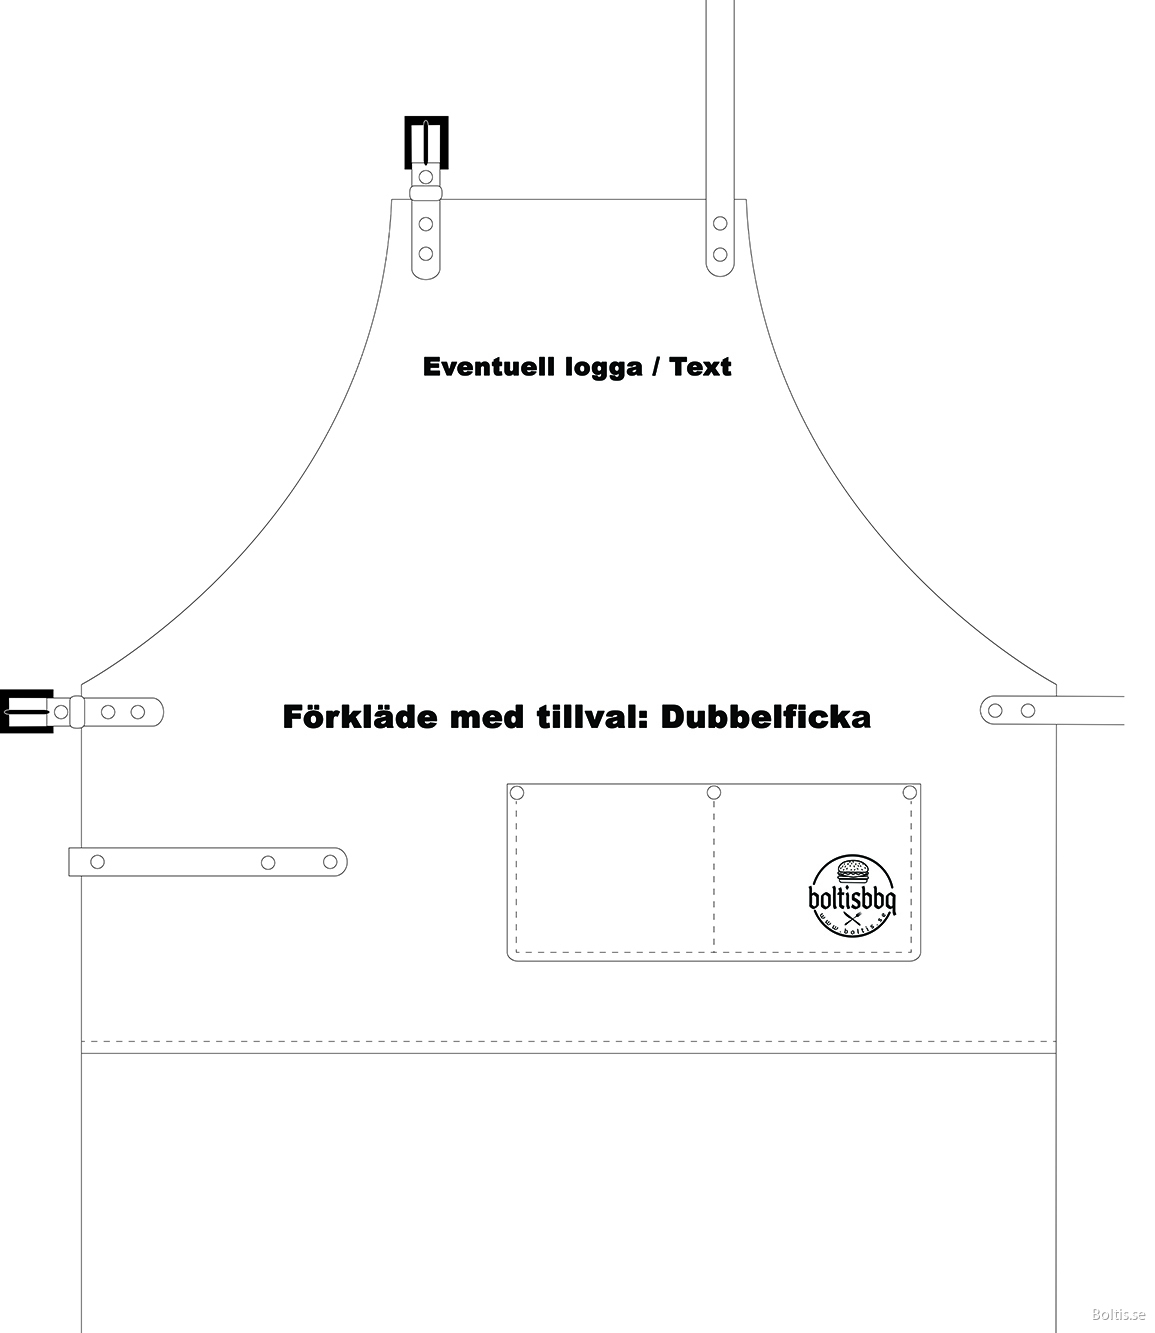 Boltisbbq layout